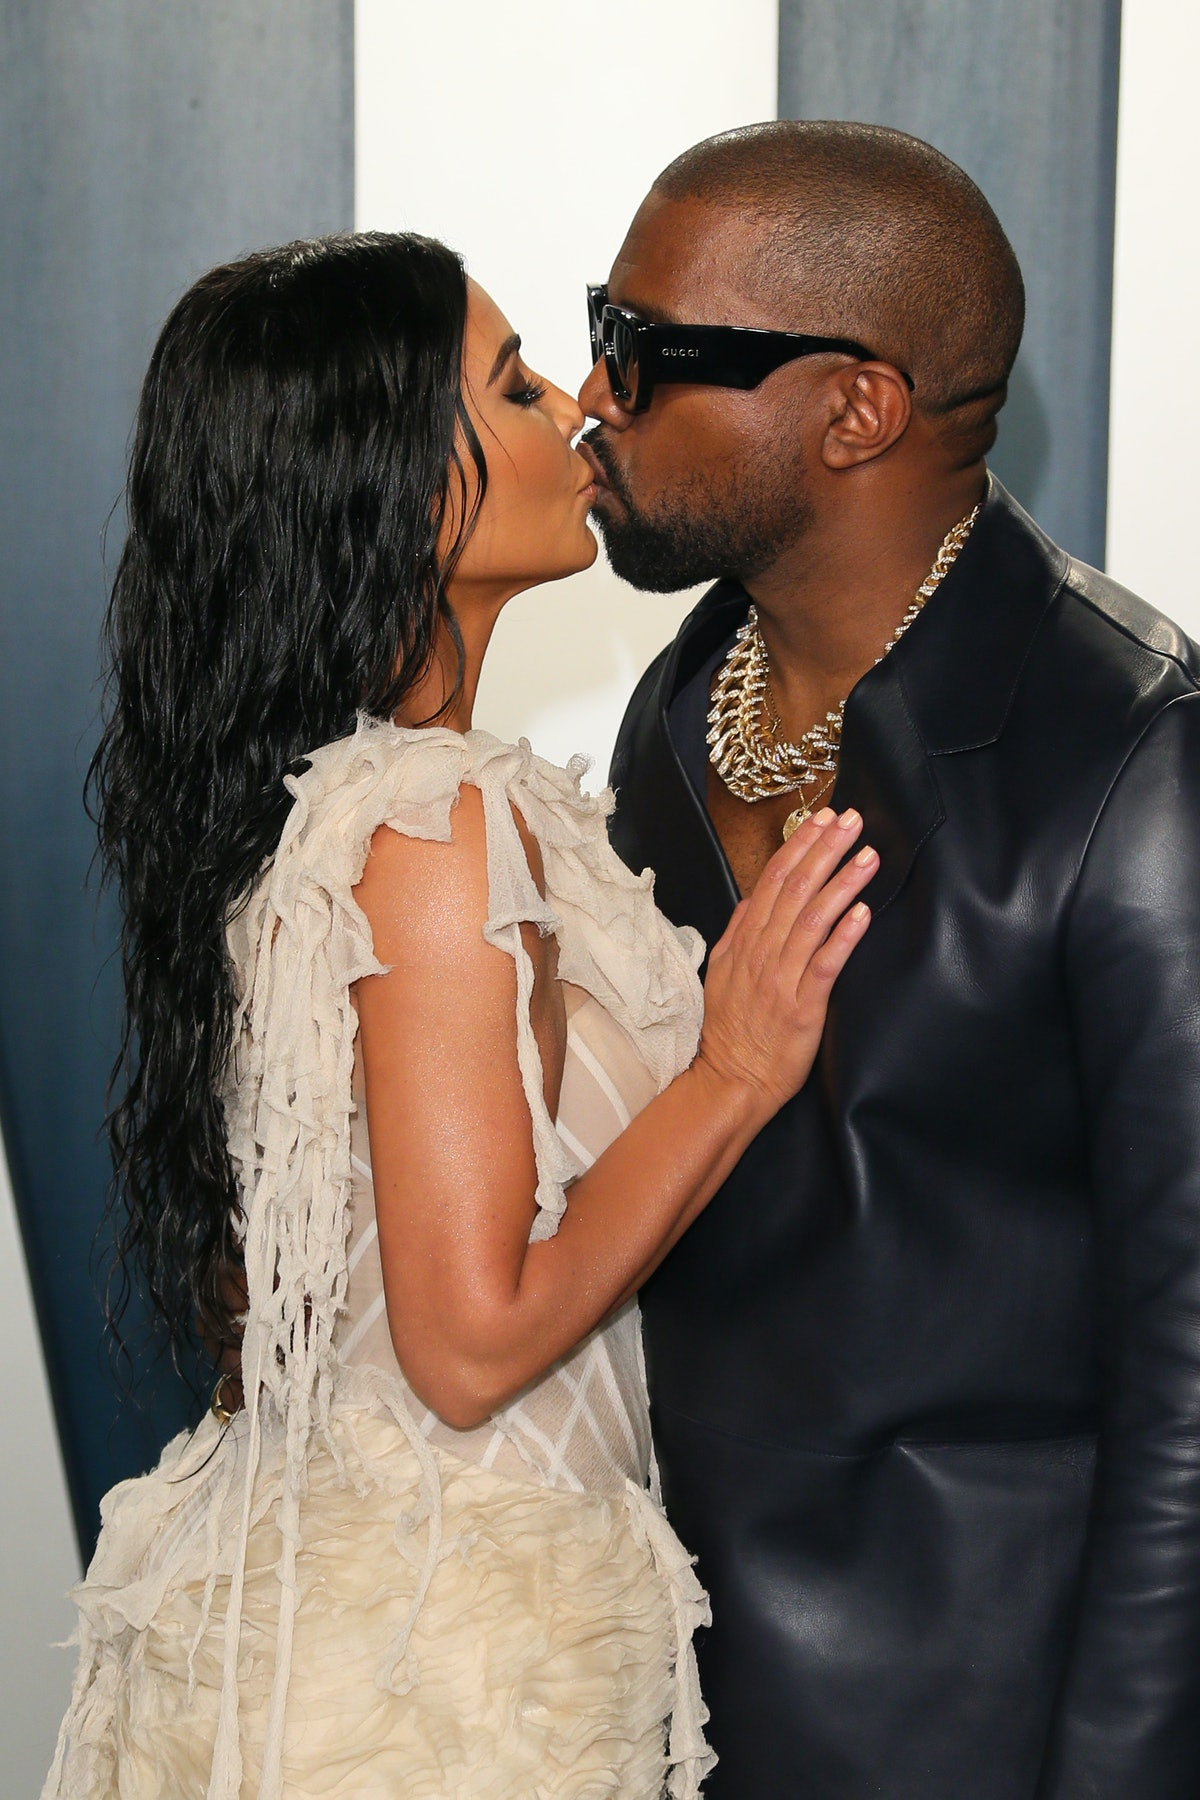 West and Kardashian kiss each other at a red carpet event.